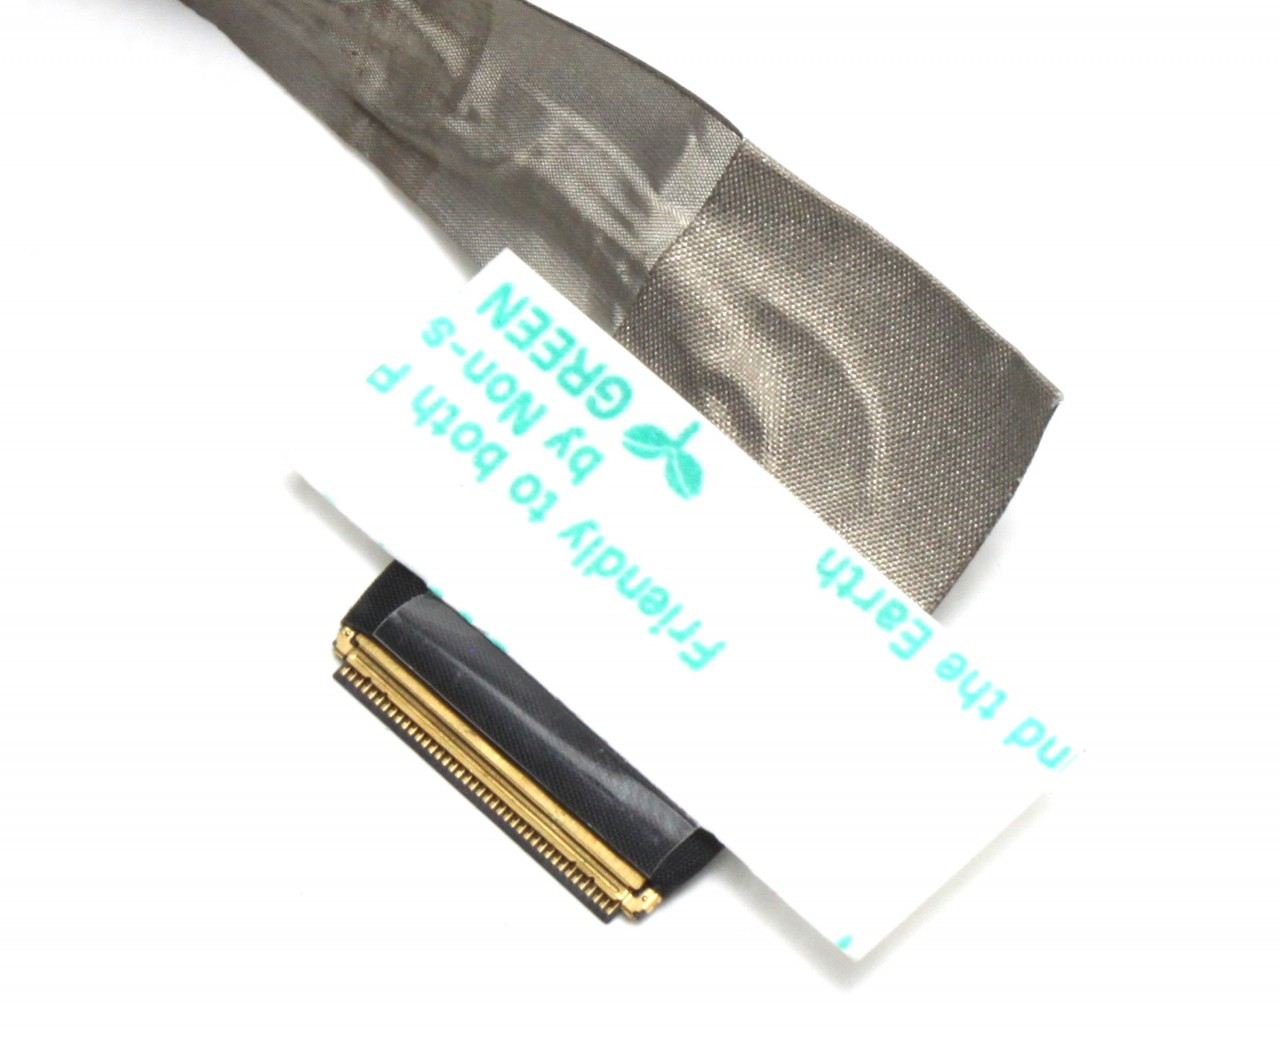 Cablu video LVDS Acer 50.PDS07.008 imagine powerlaptop.ro 2021